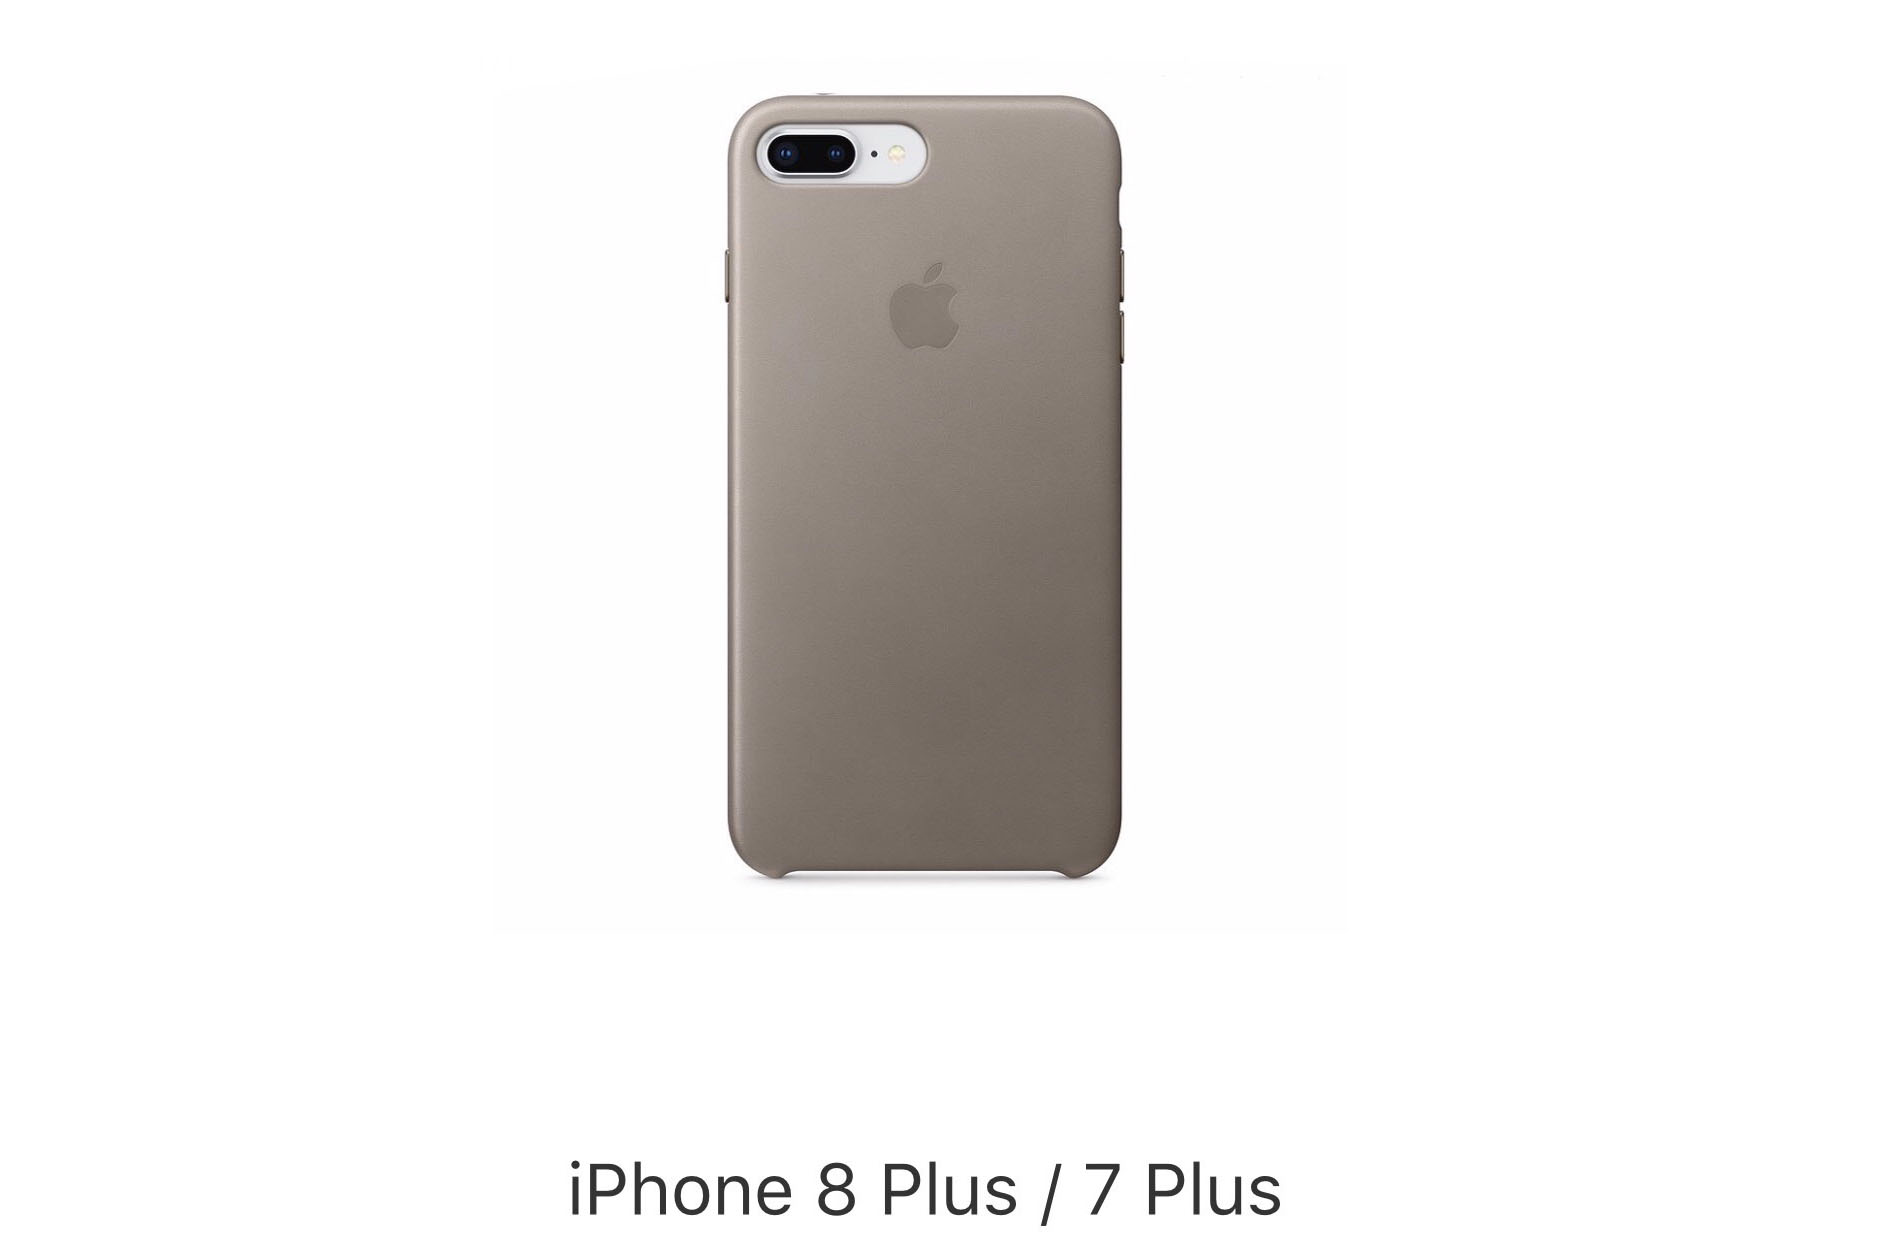 Ốp Da Iphone 7 Plus - 8 Plus